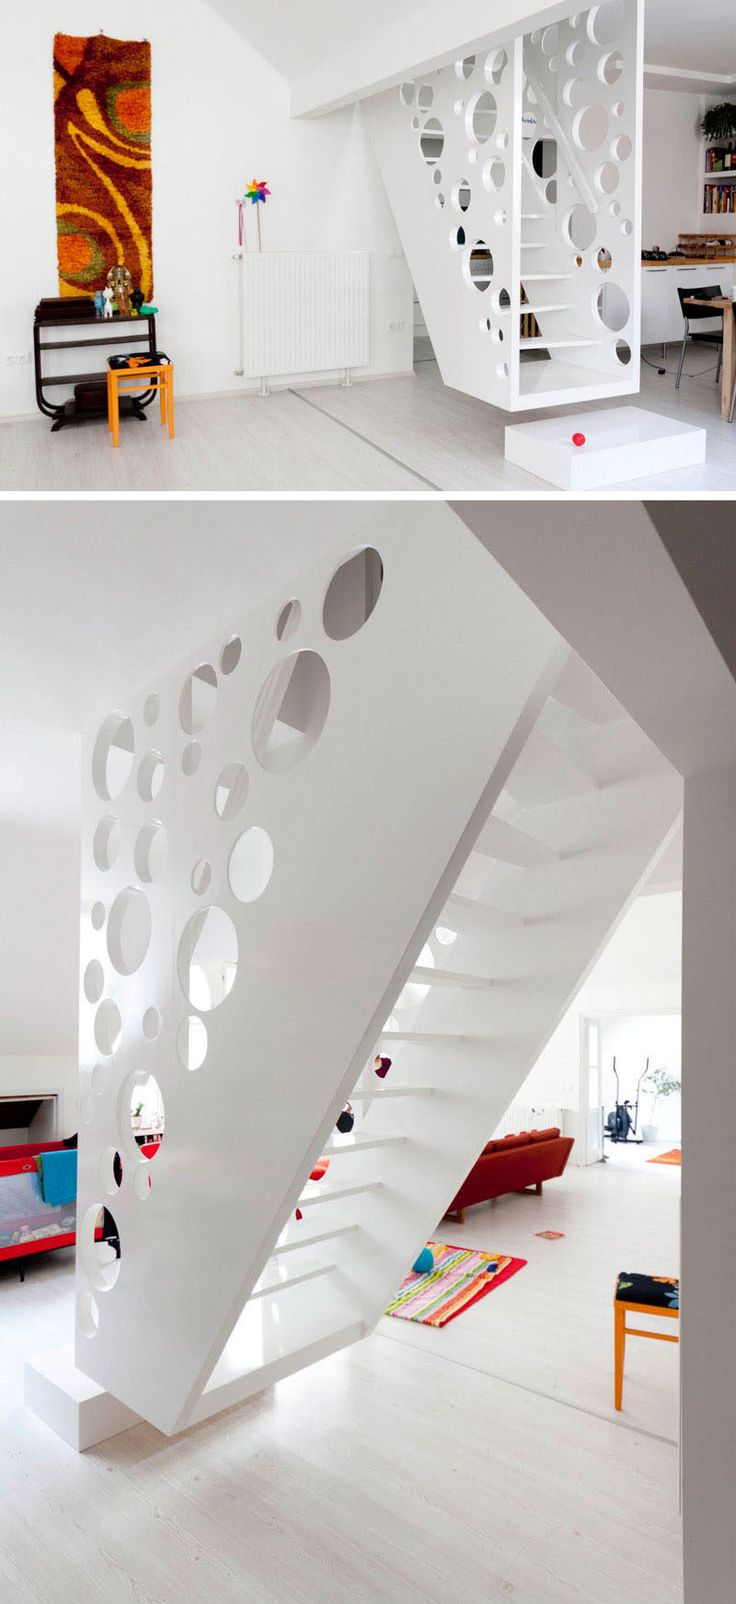 This playful, white, hanging staircase has circular cutouts on both sides to add an element of safety to the stairs and make the space feel more open and connected.